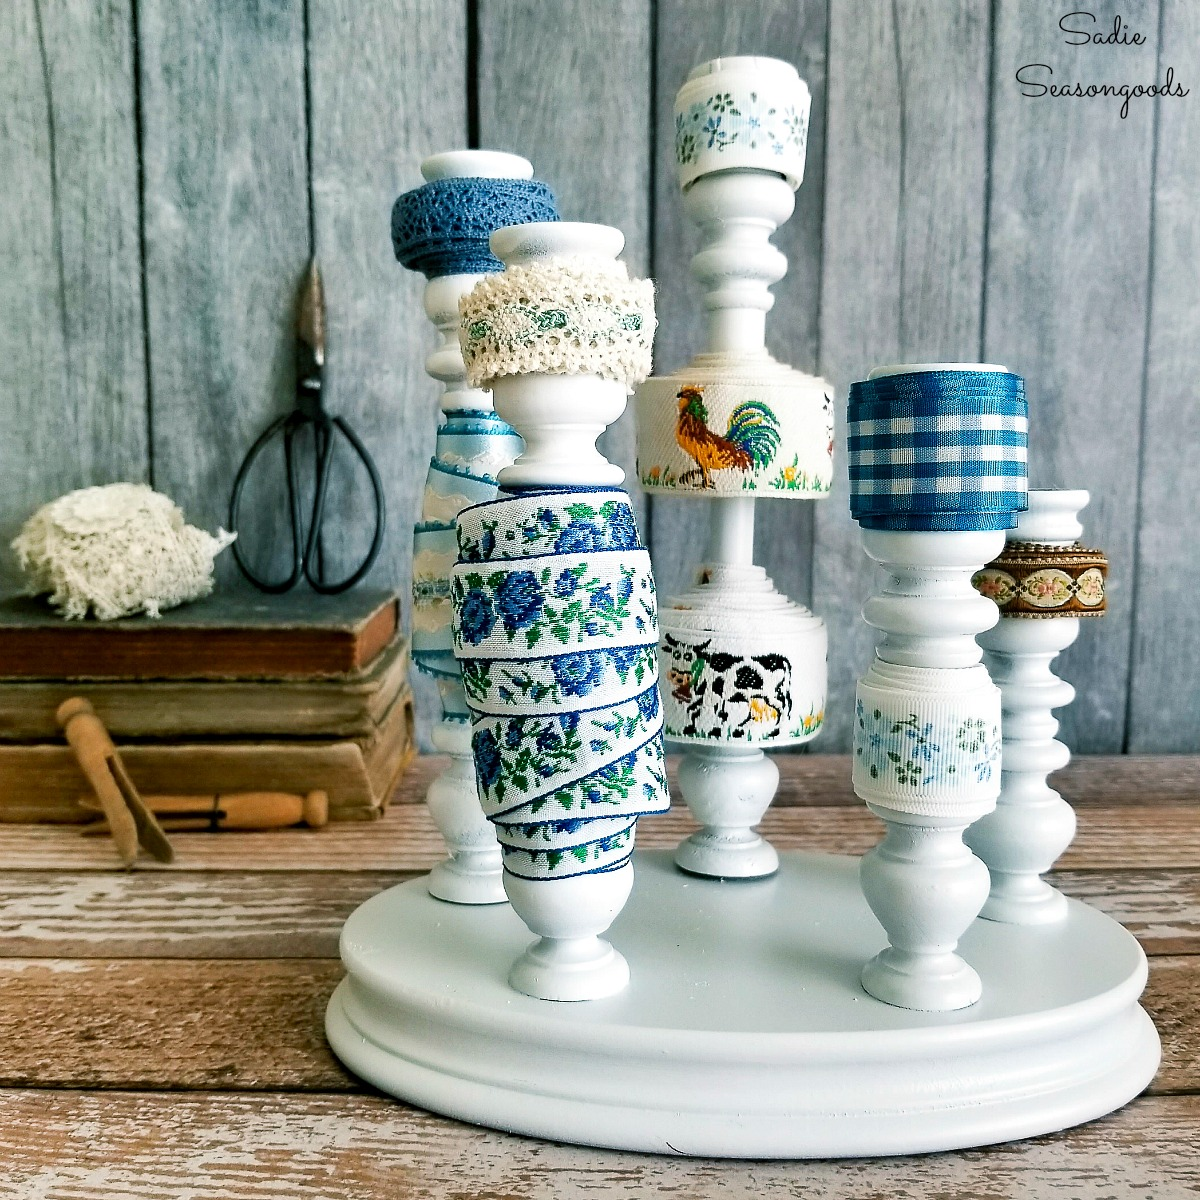 Ribbon Organizer with Wooden Candlesticks from the Thrift Store